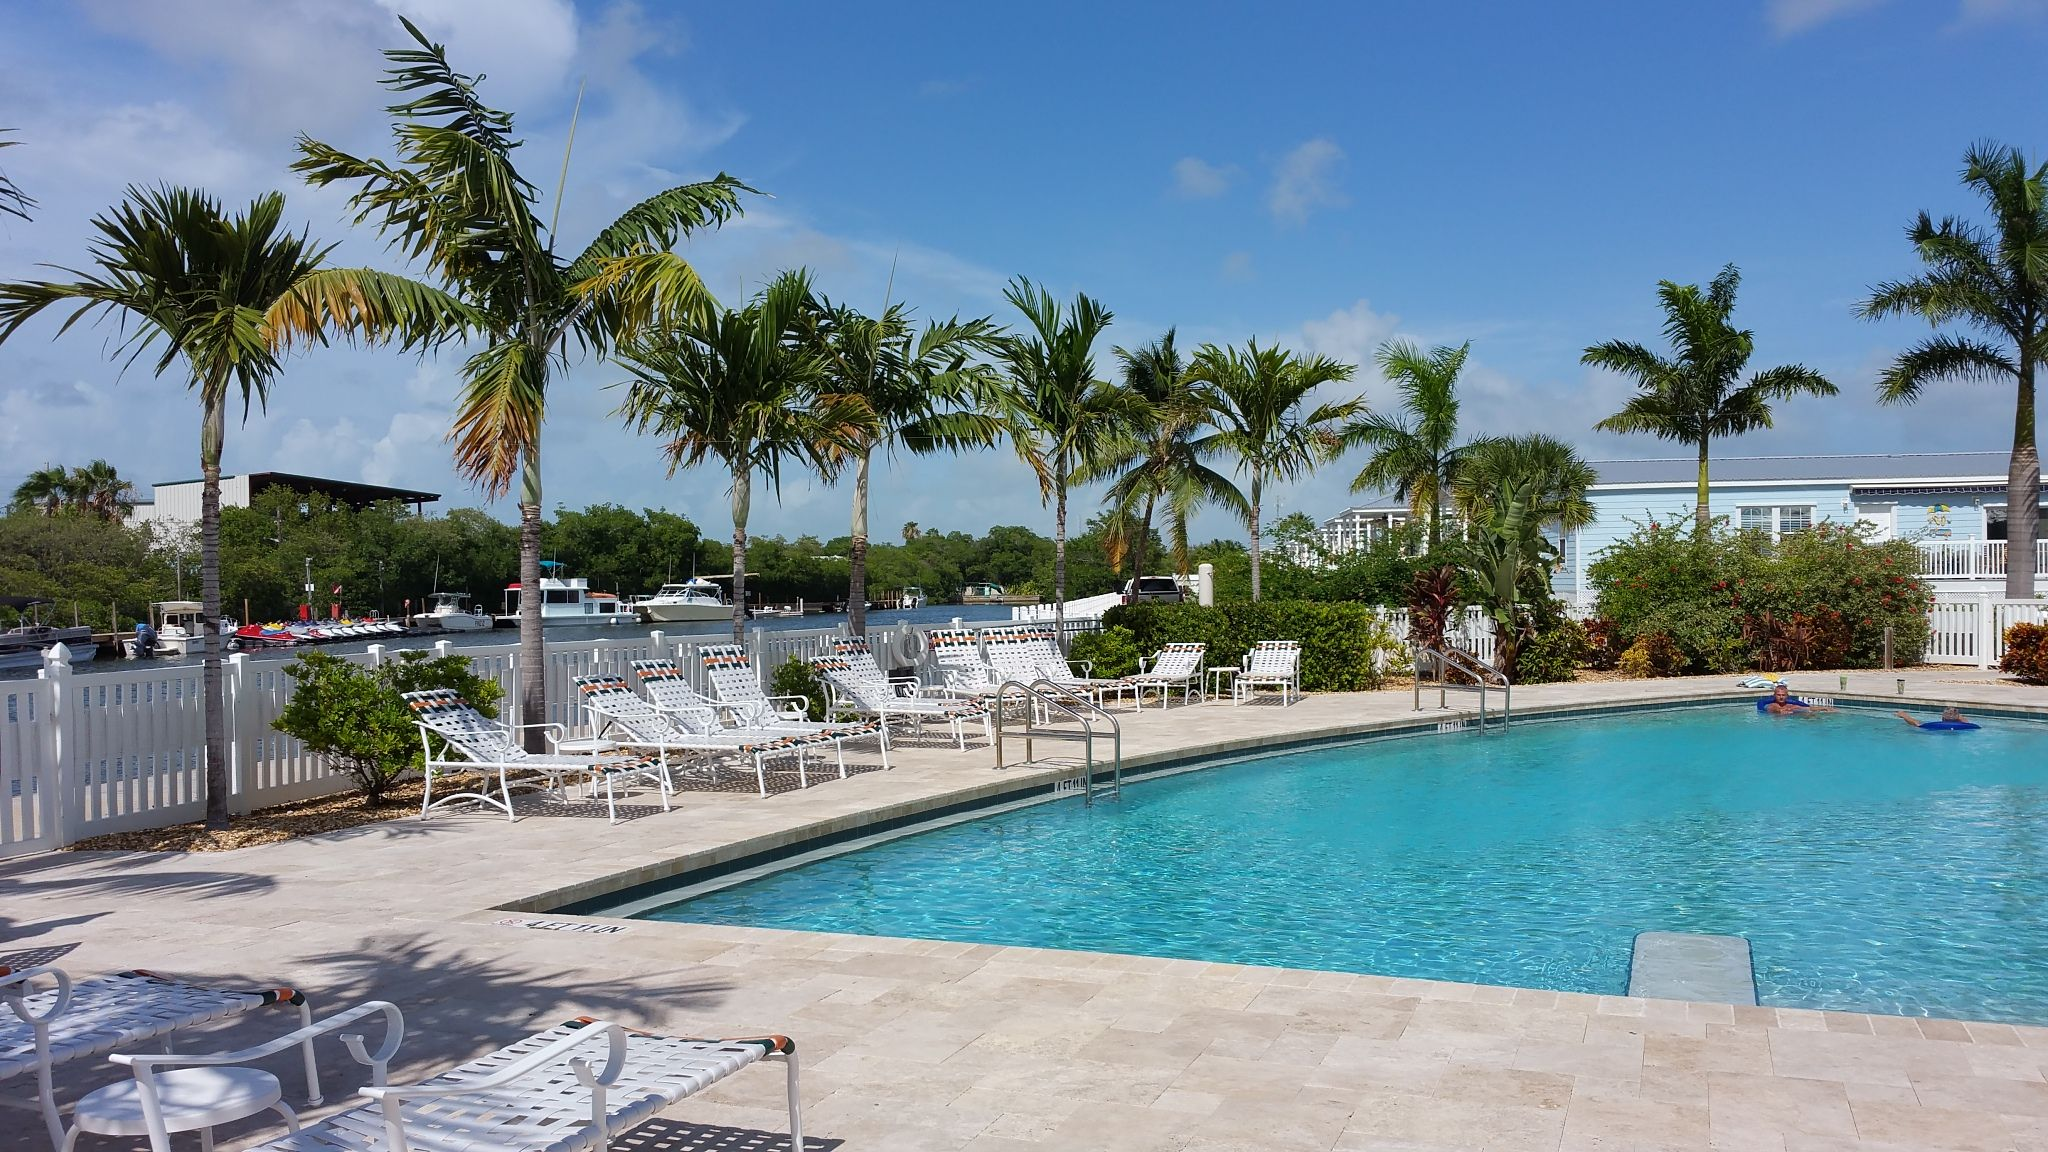 Beautiful Pool Area At The Sunset Harbor Community In Key West